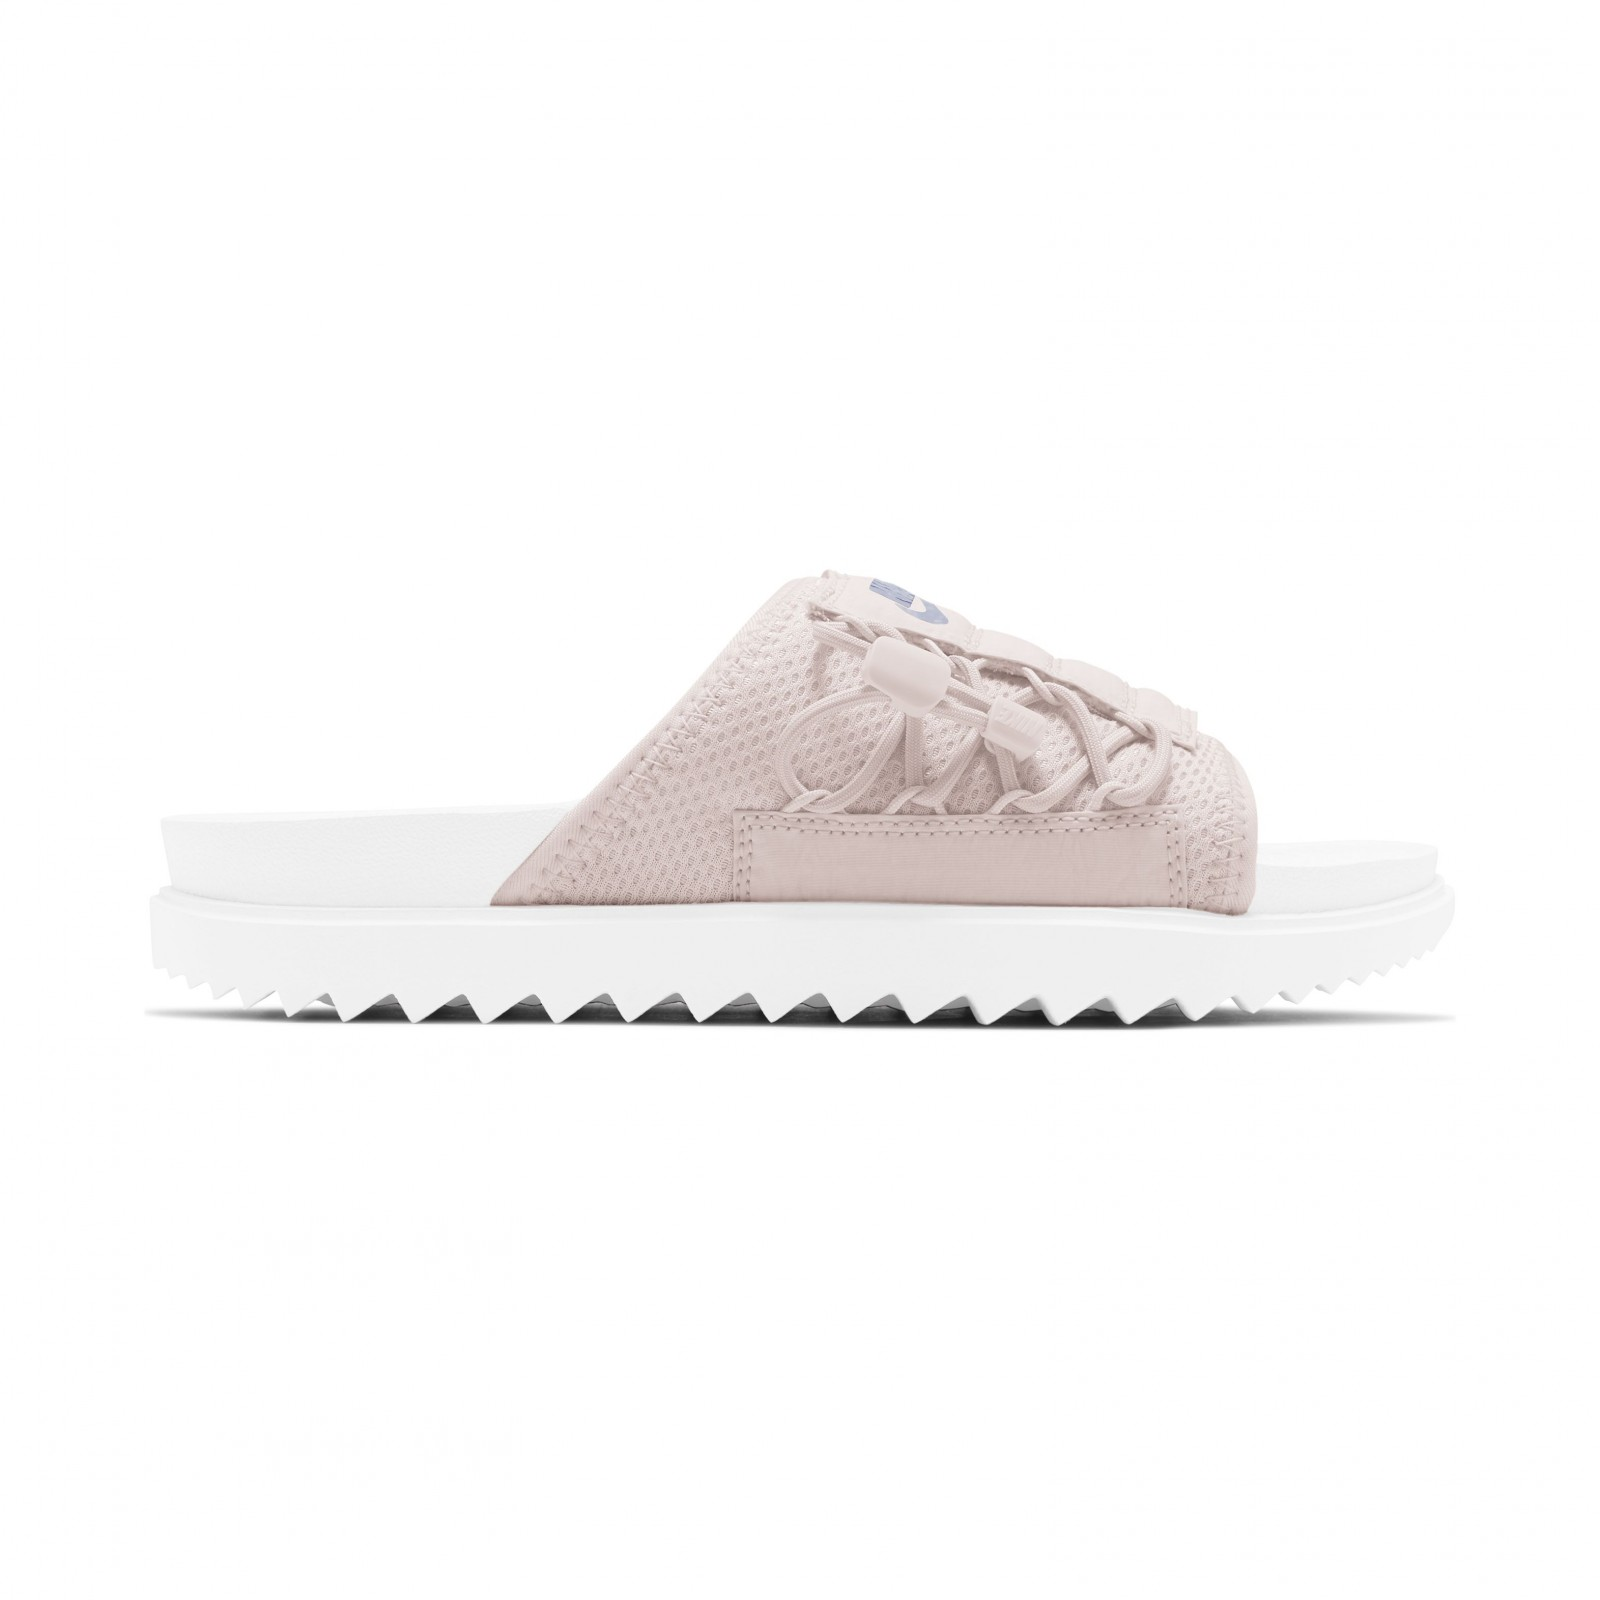 Wmns nike asuna slide WHITE/GHOST-BARELY ROSE